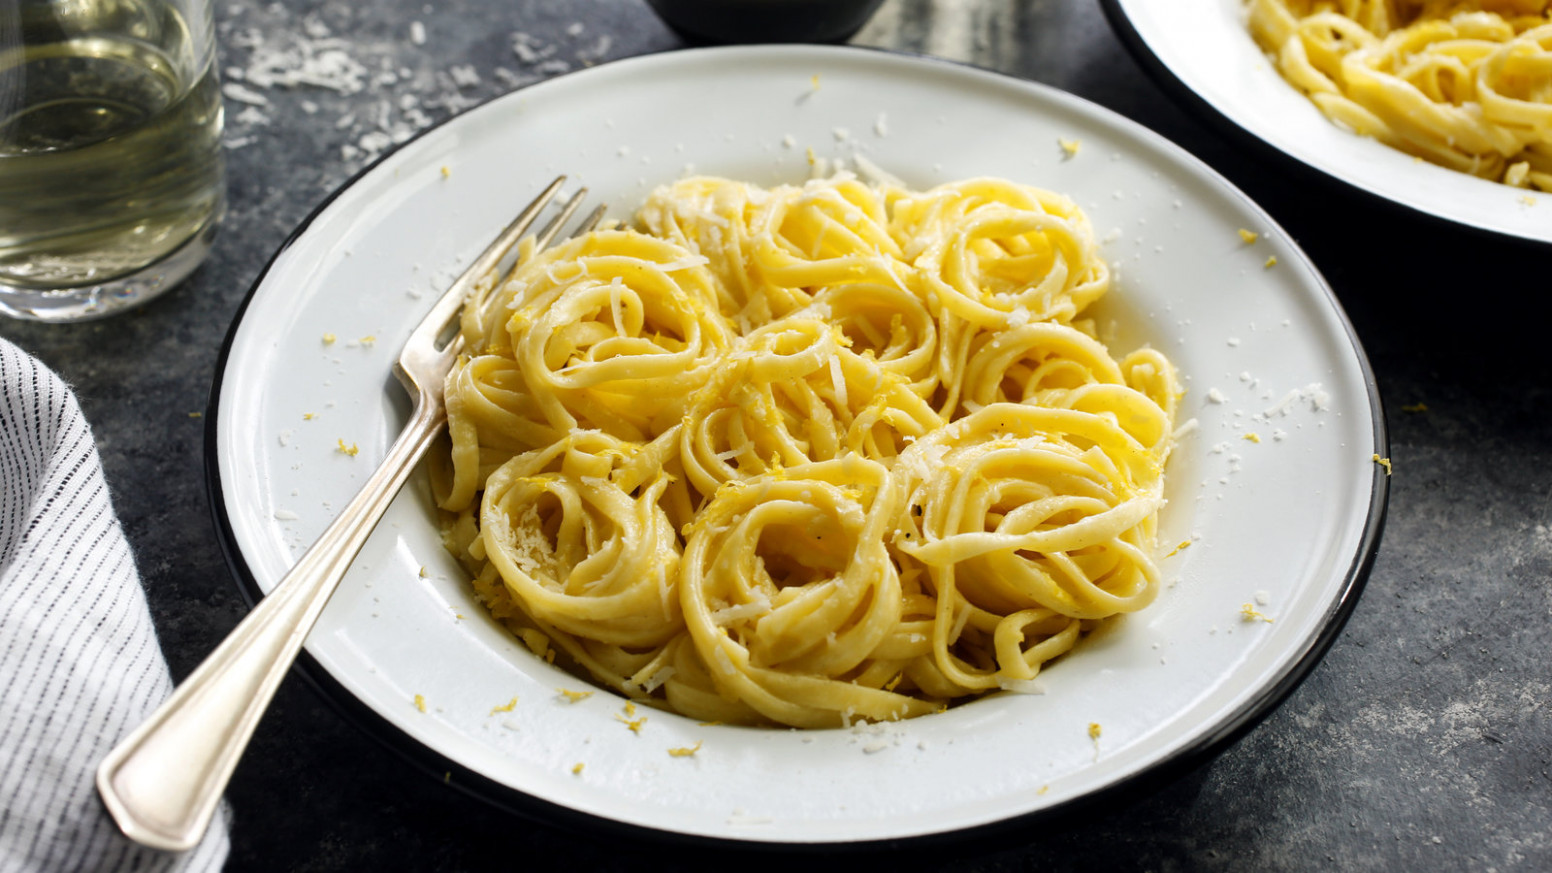 Linguine With Lemon Sauce Recipe - NYT Cooking